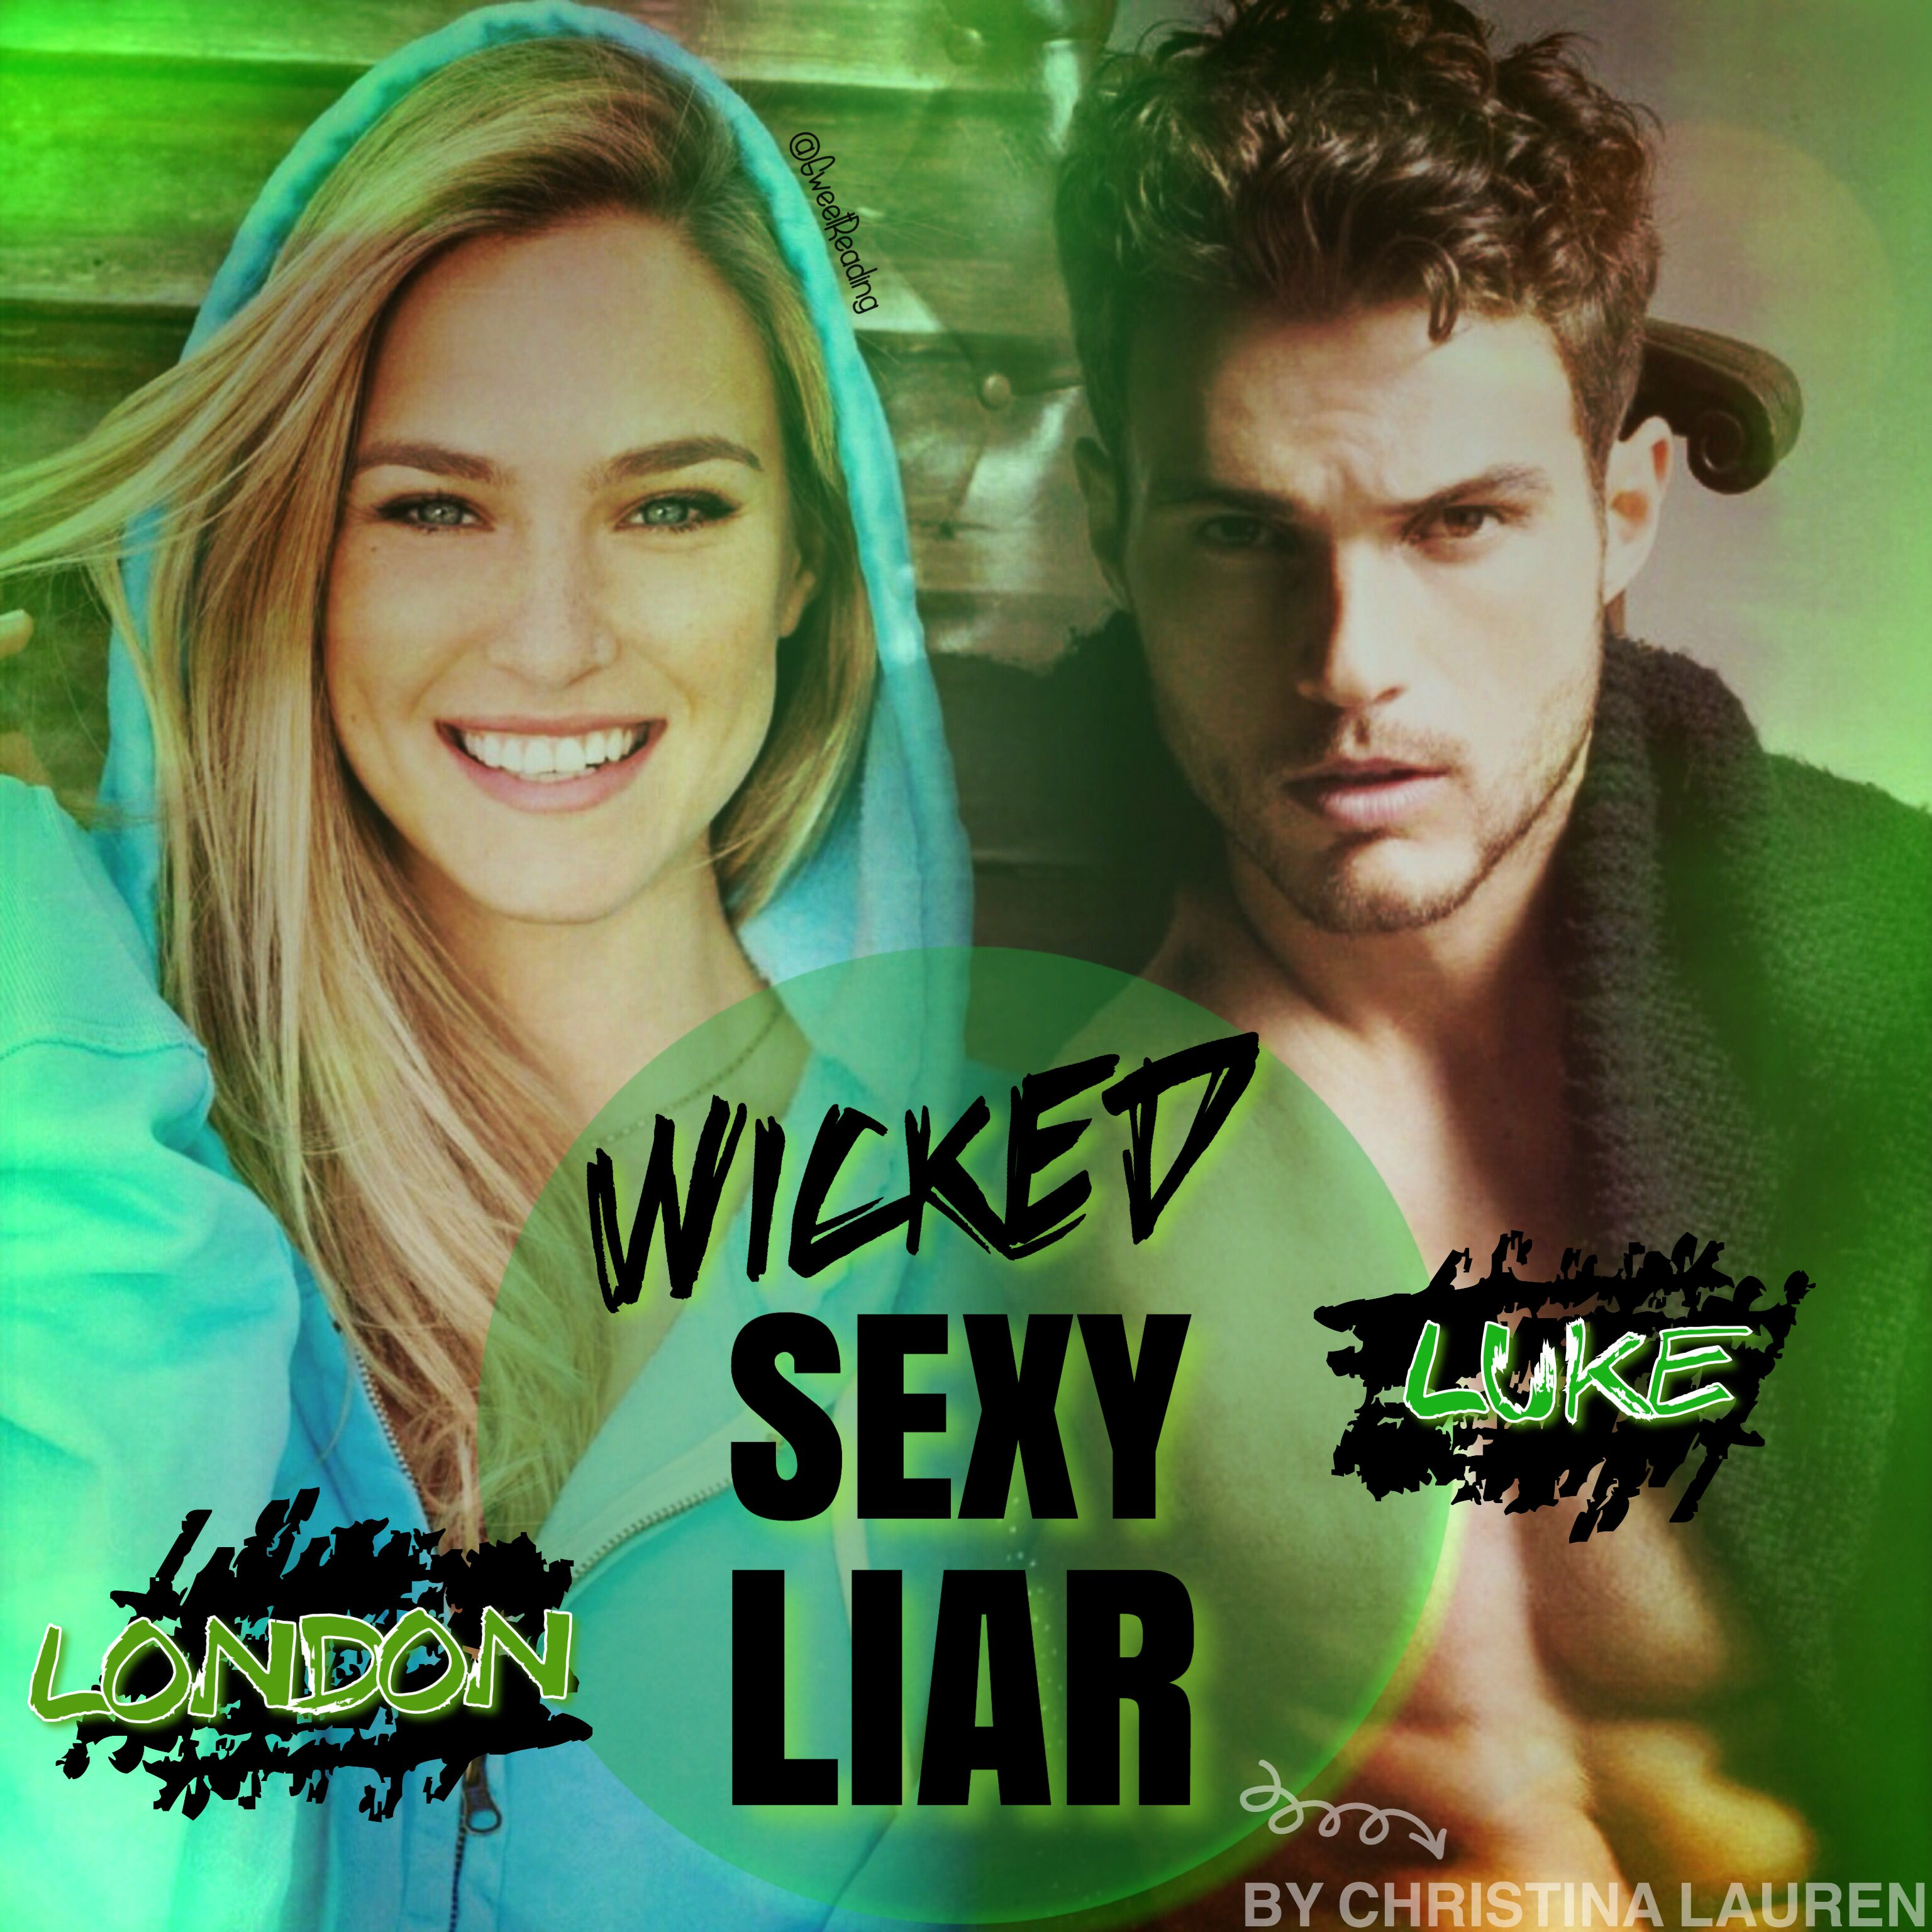 Wicked sexy liar by christina lauren